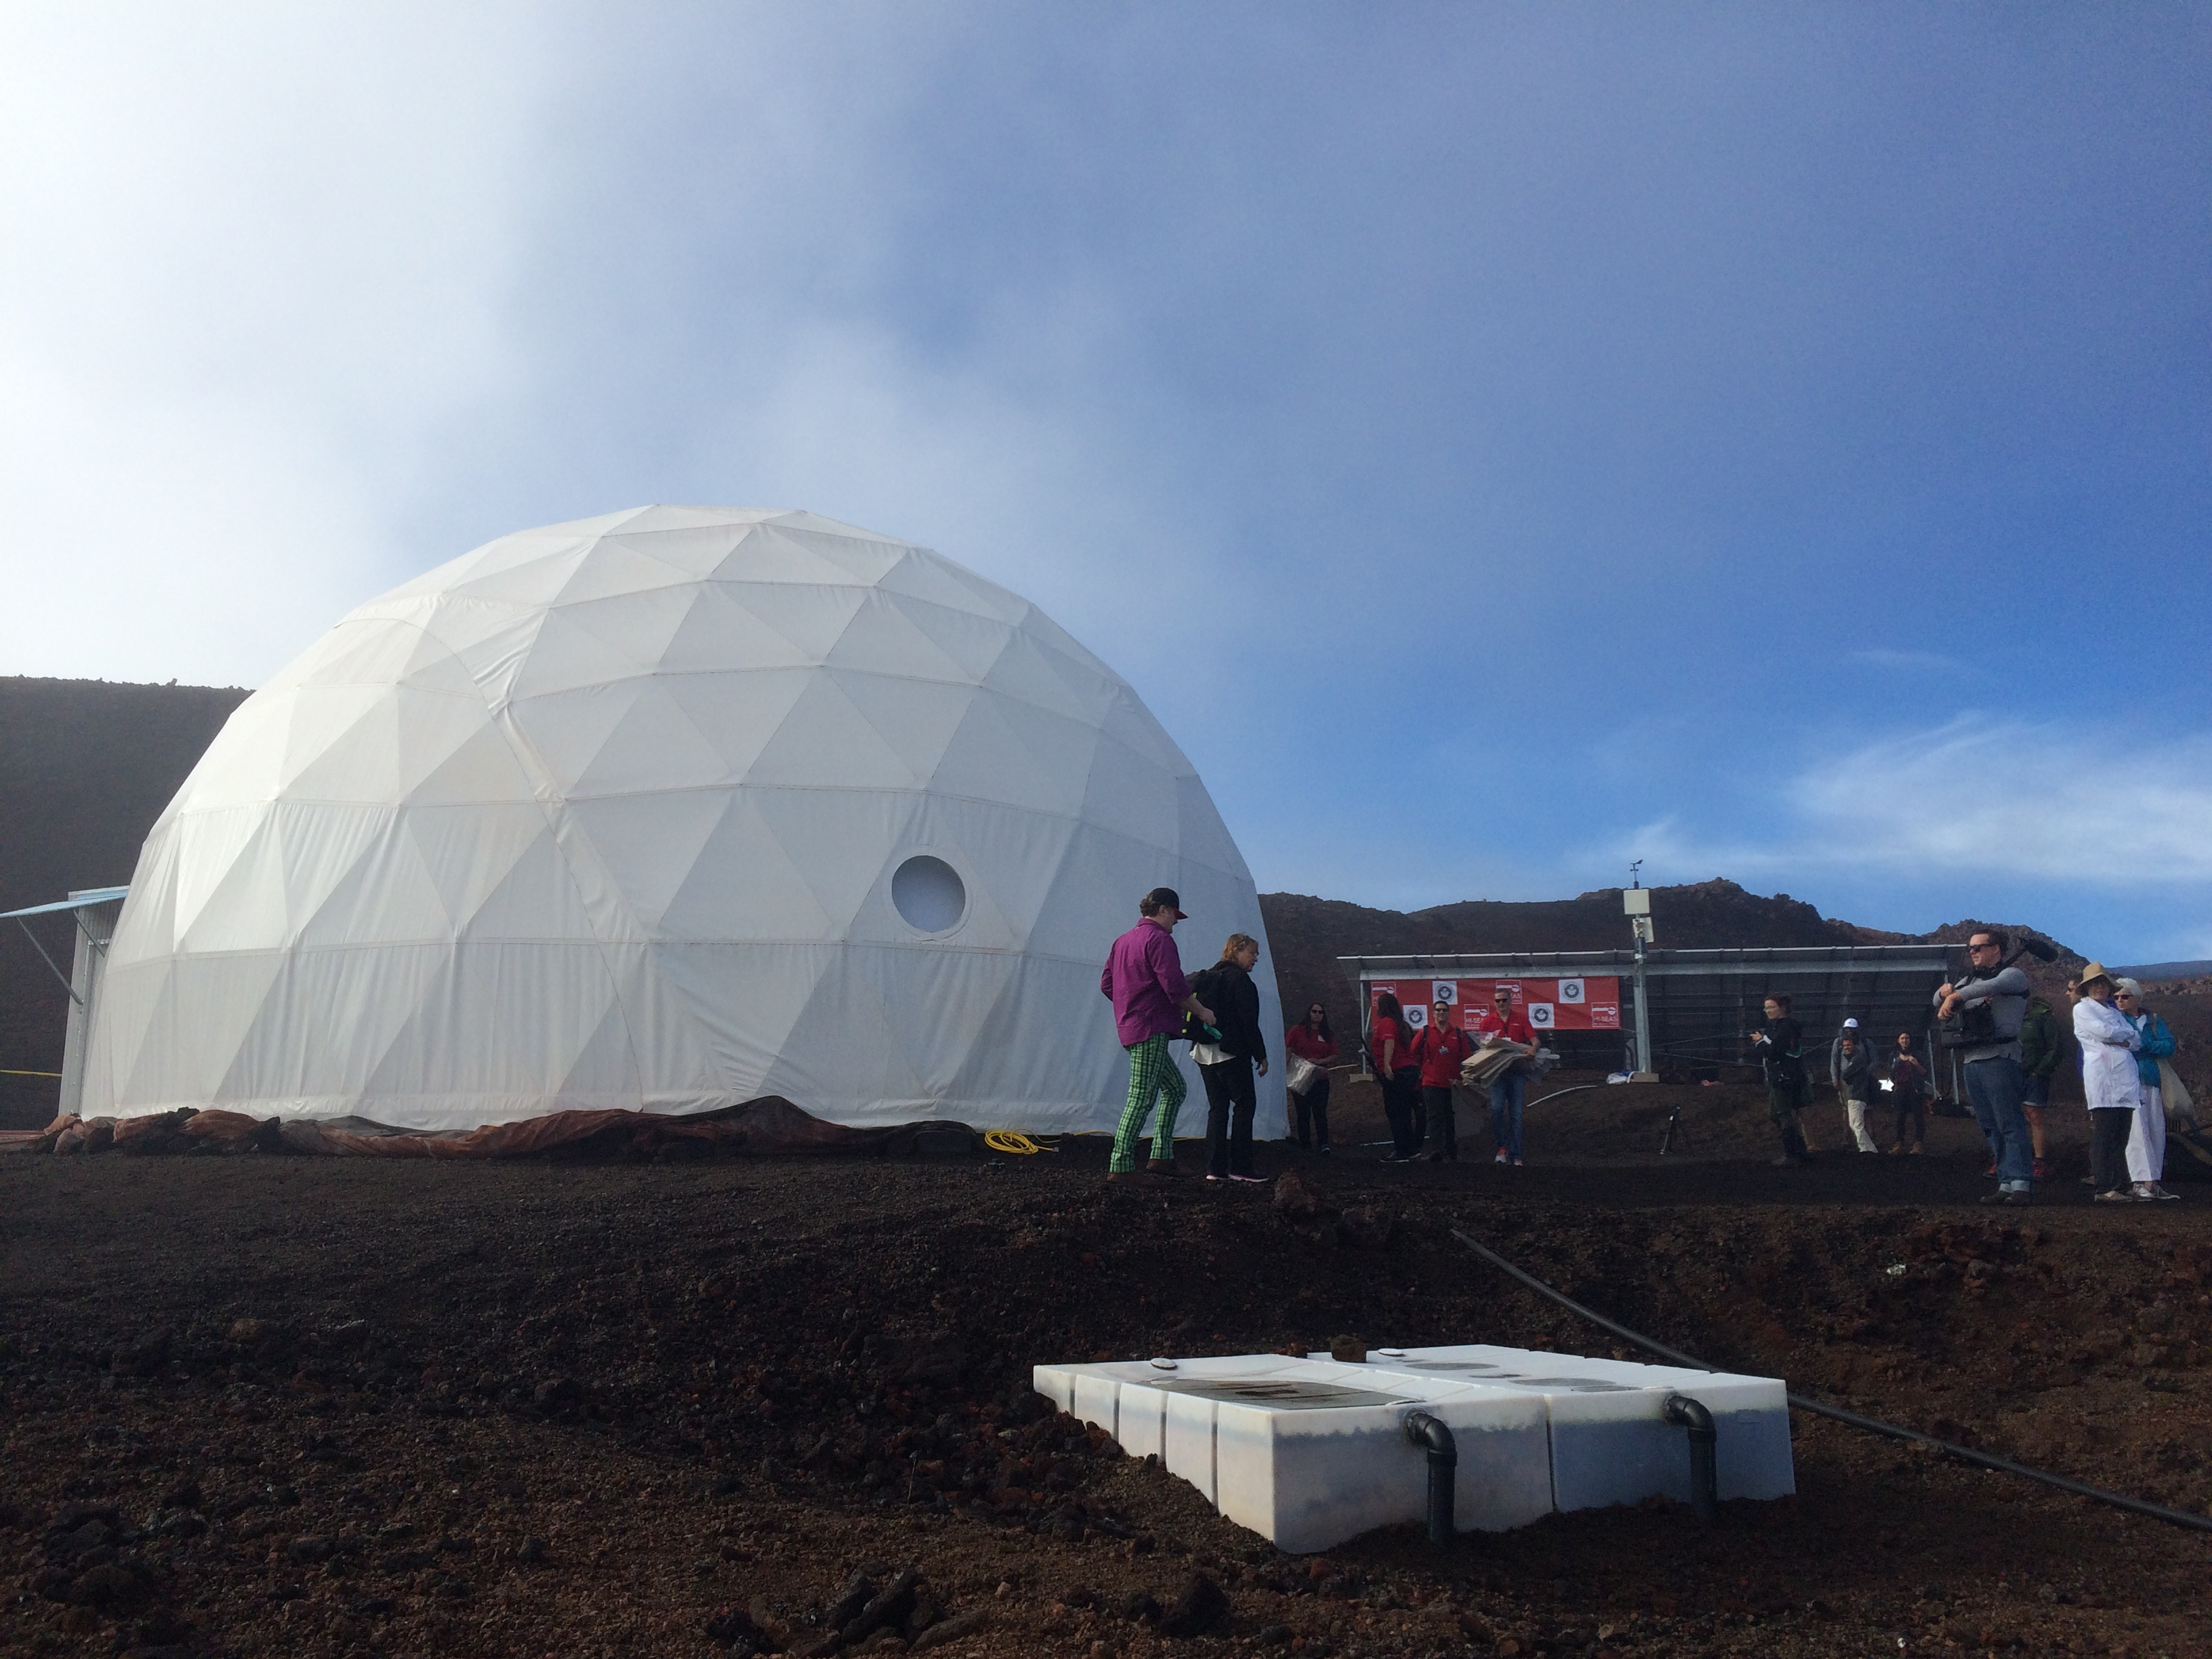 One-Year Mock Mars Crew 'Returns to Earth': HI-SEAS Photos